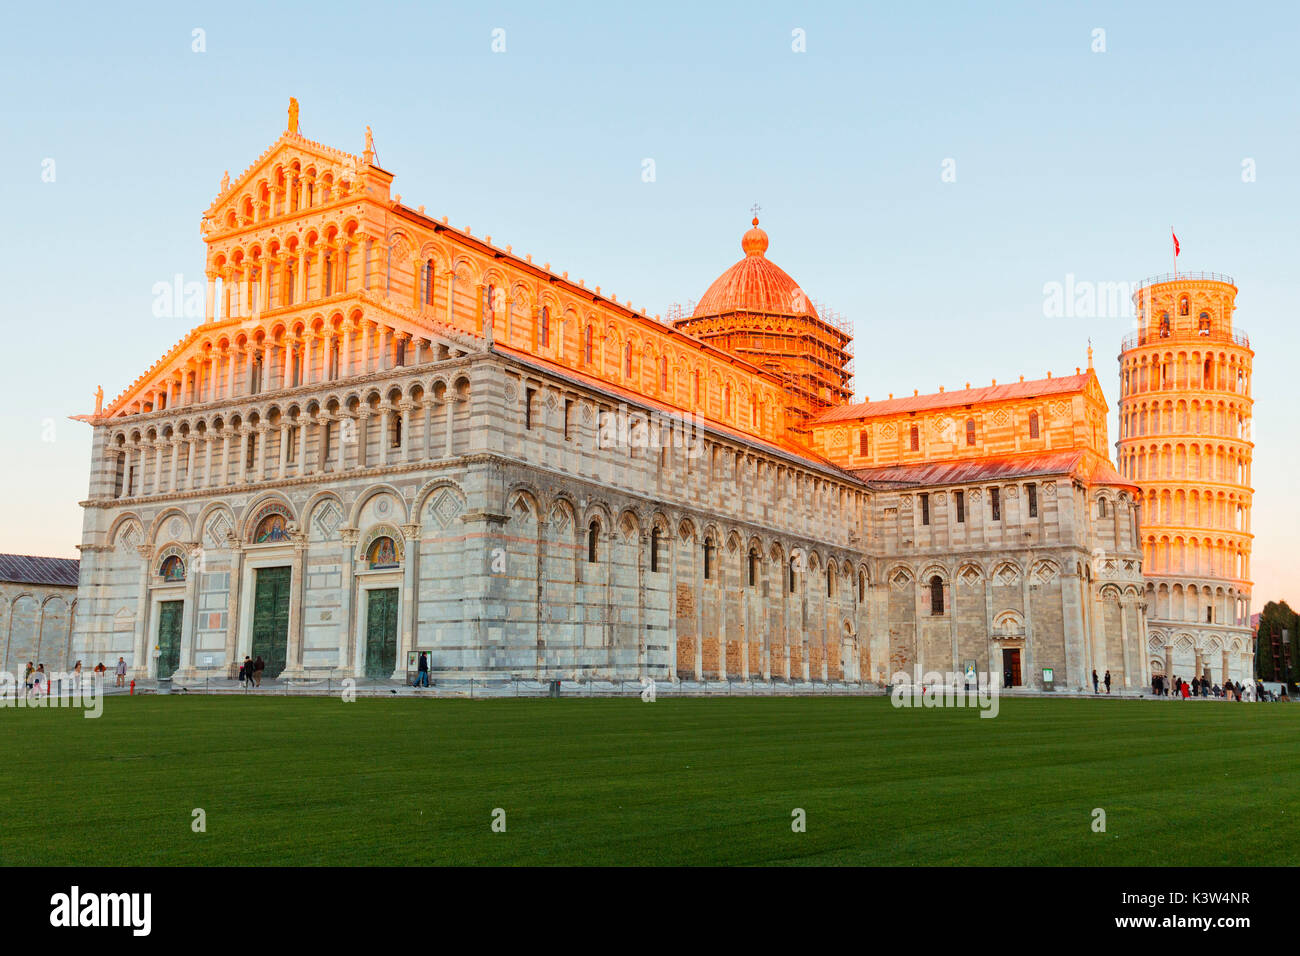 Europe,Italy,Tuscany,Pisa. Square of miracles at sunset - Stock Image